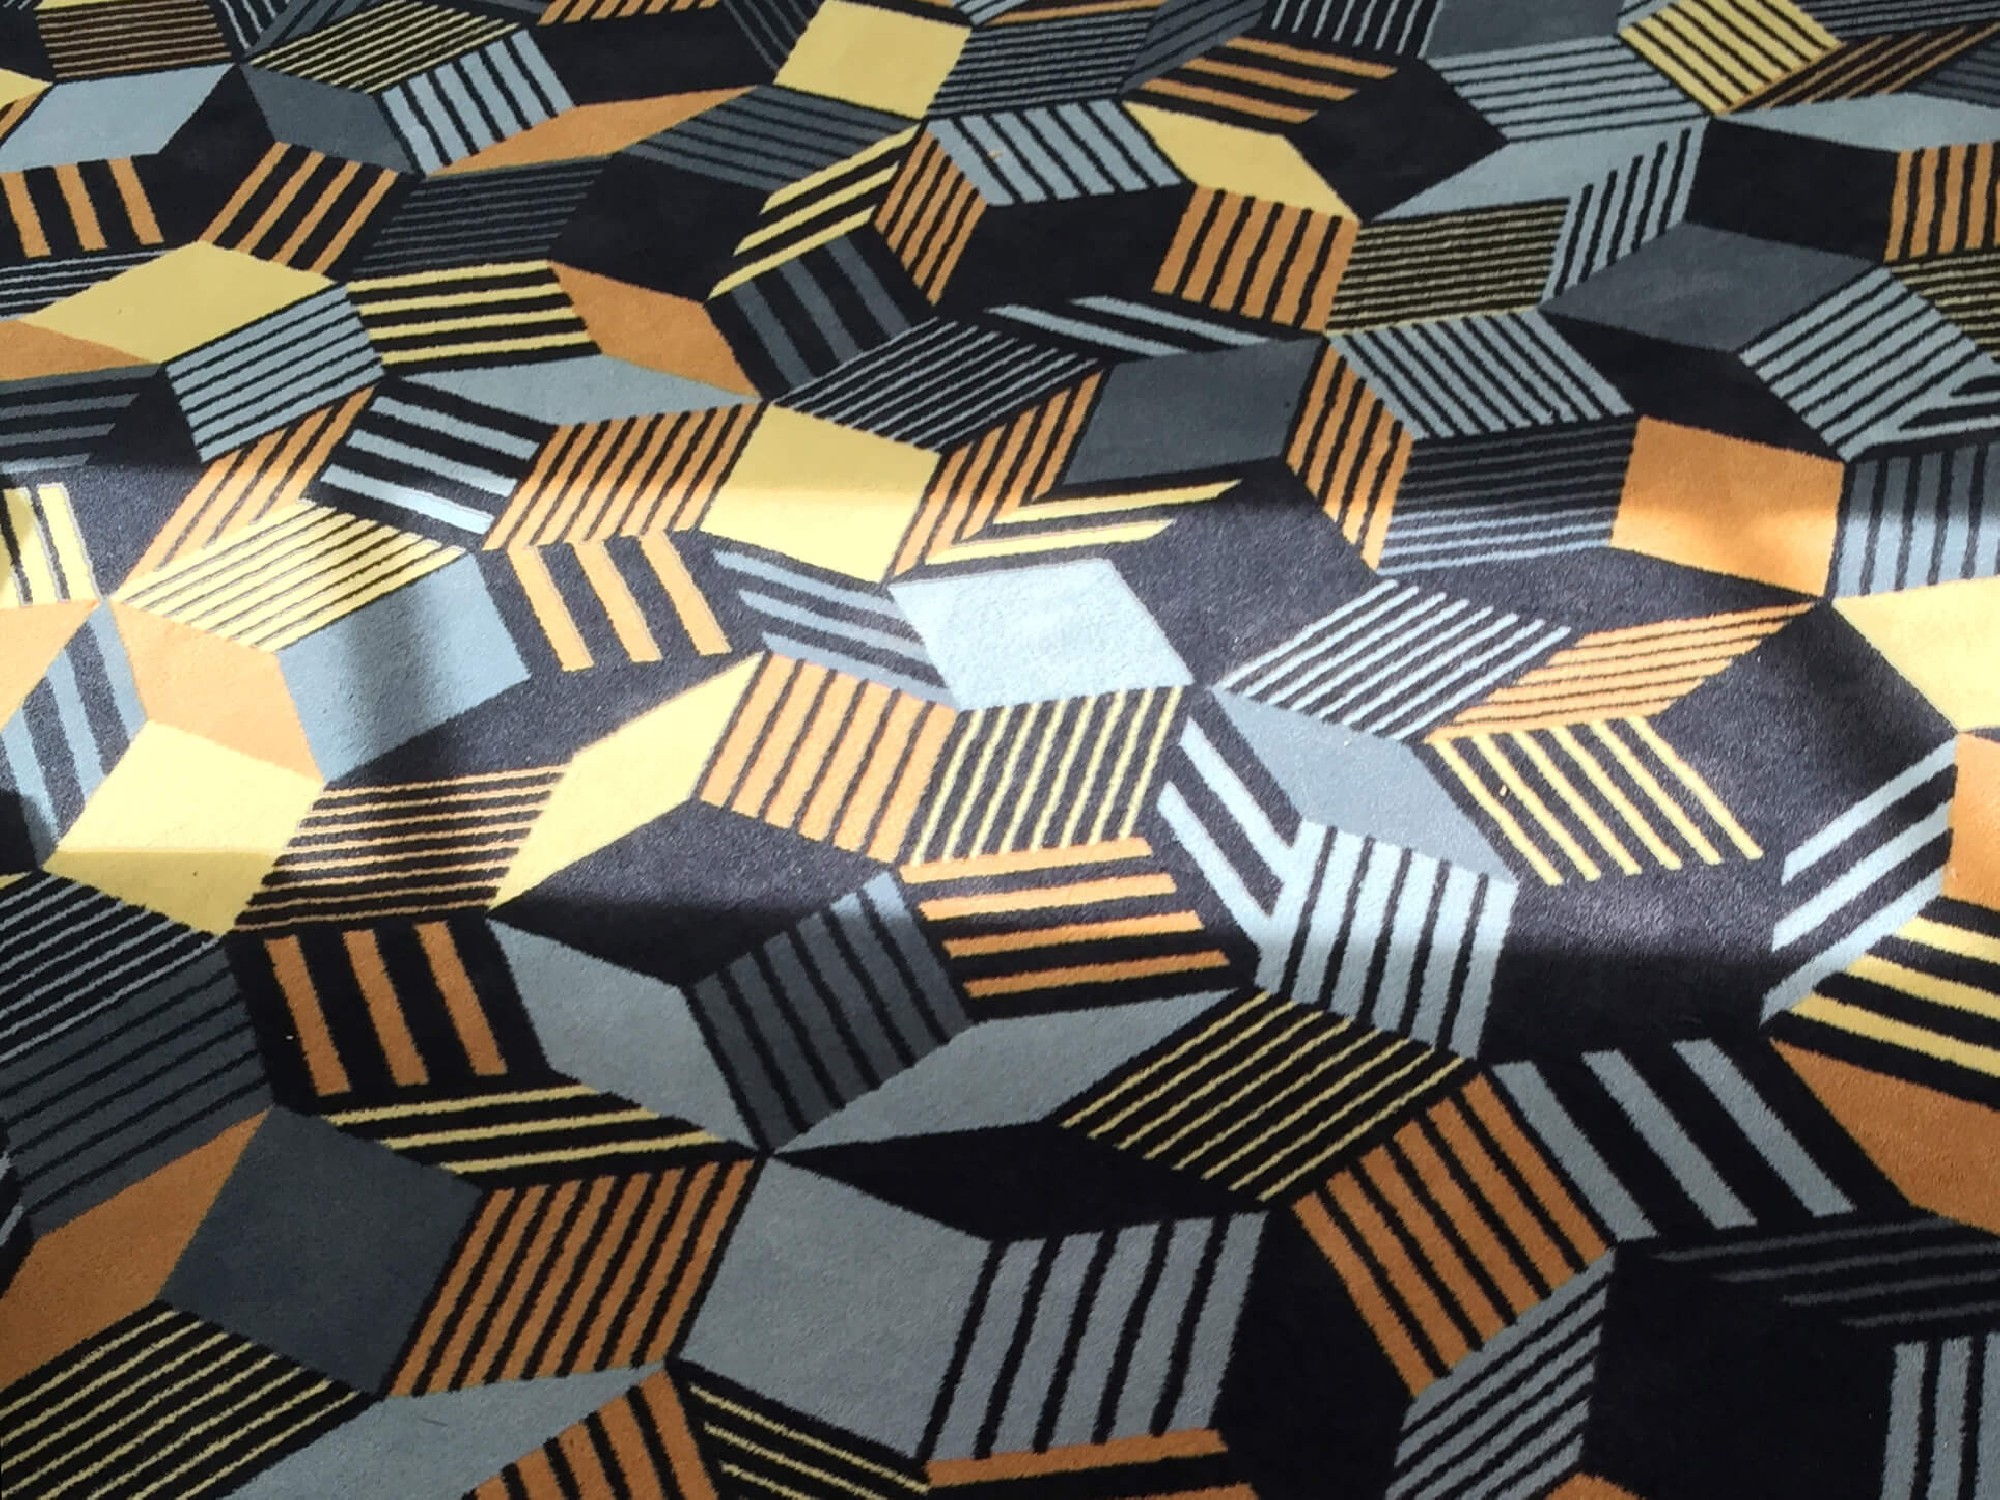 Details du tapis Penrose Rocks, couleur terre, sable, pierre, Design IchetKar édition Bazartherapy